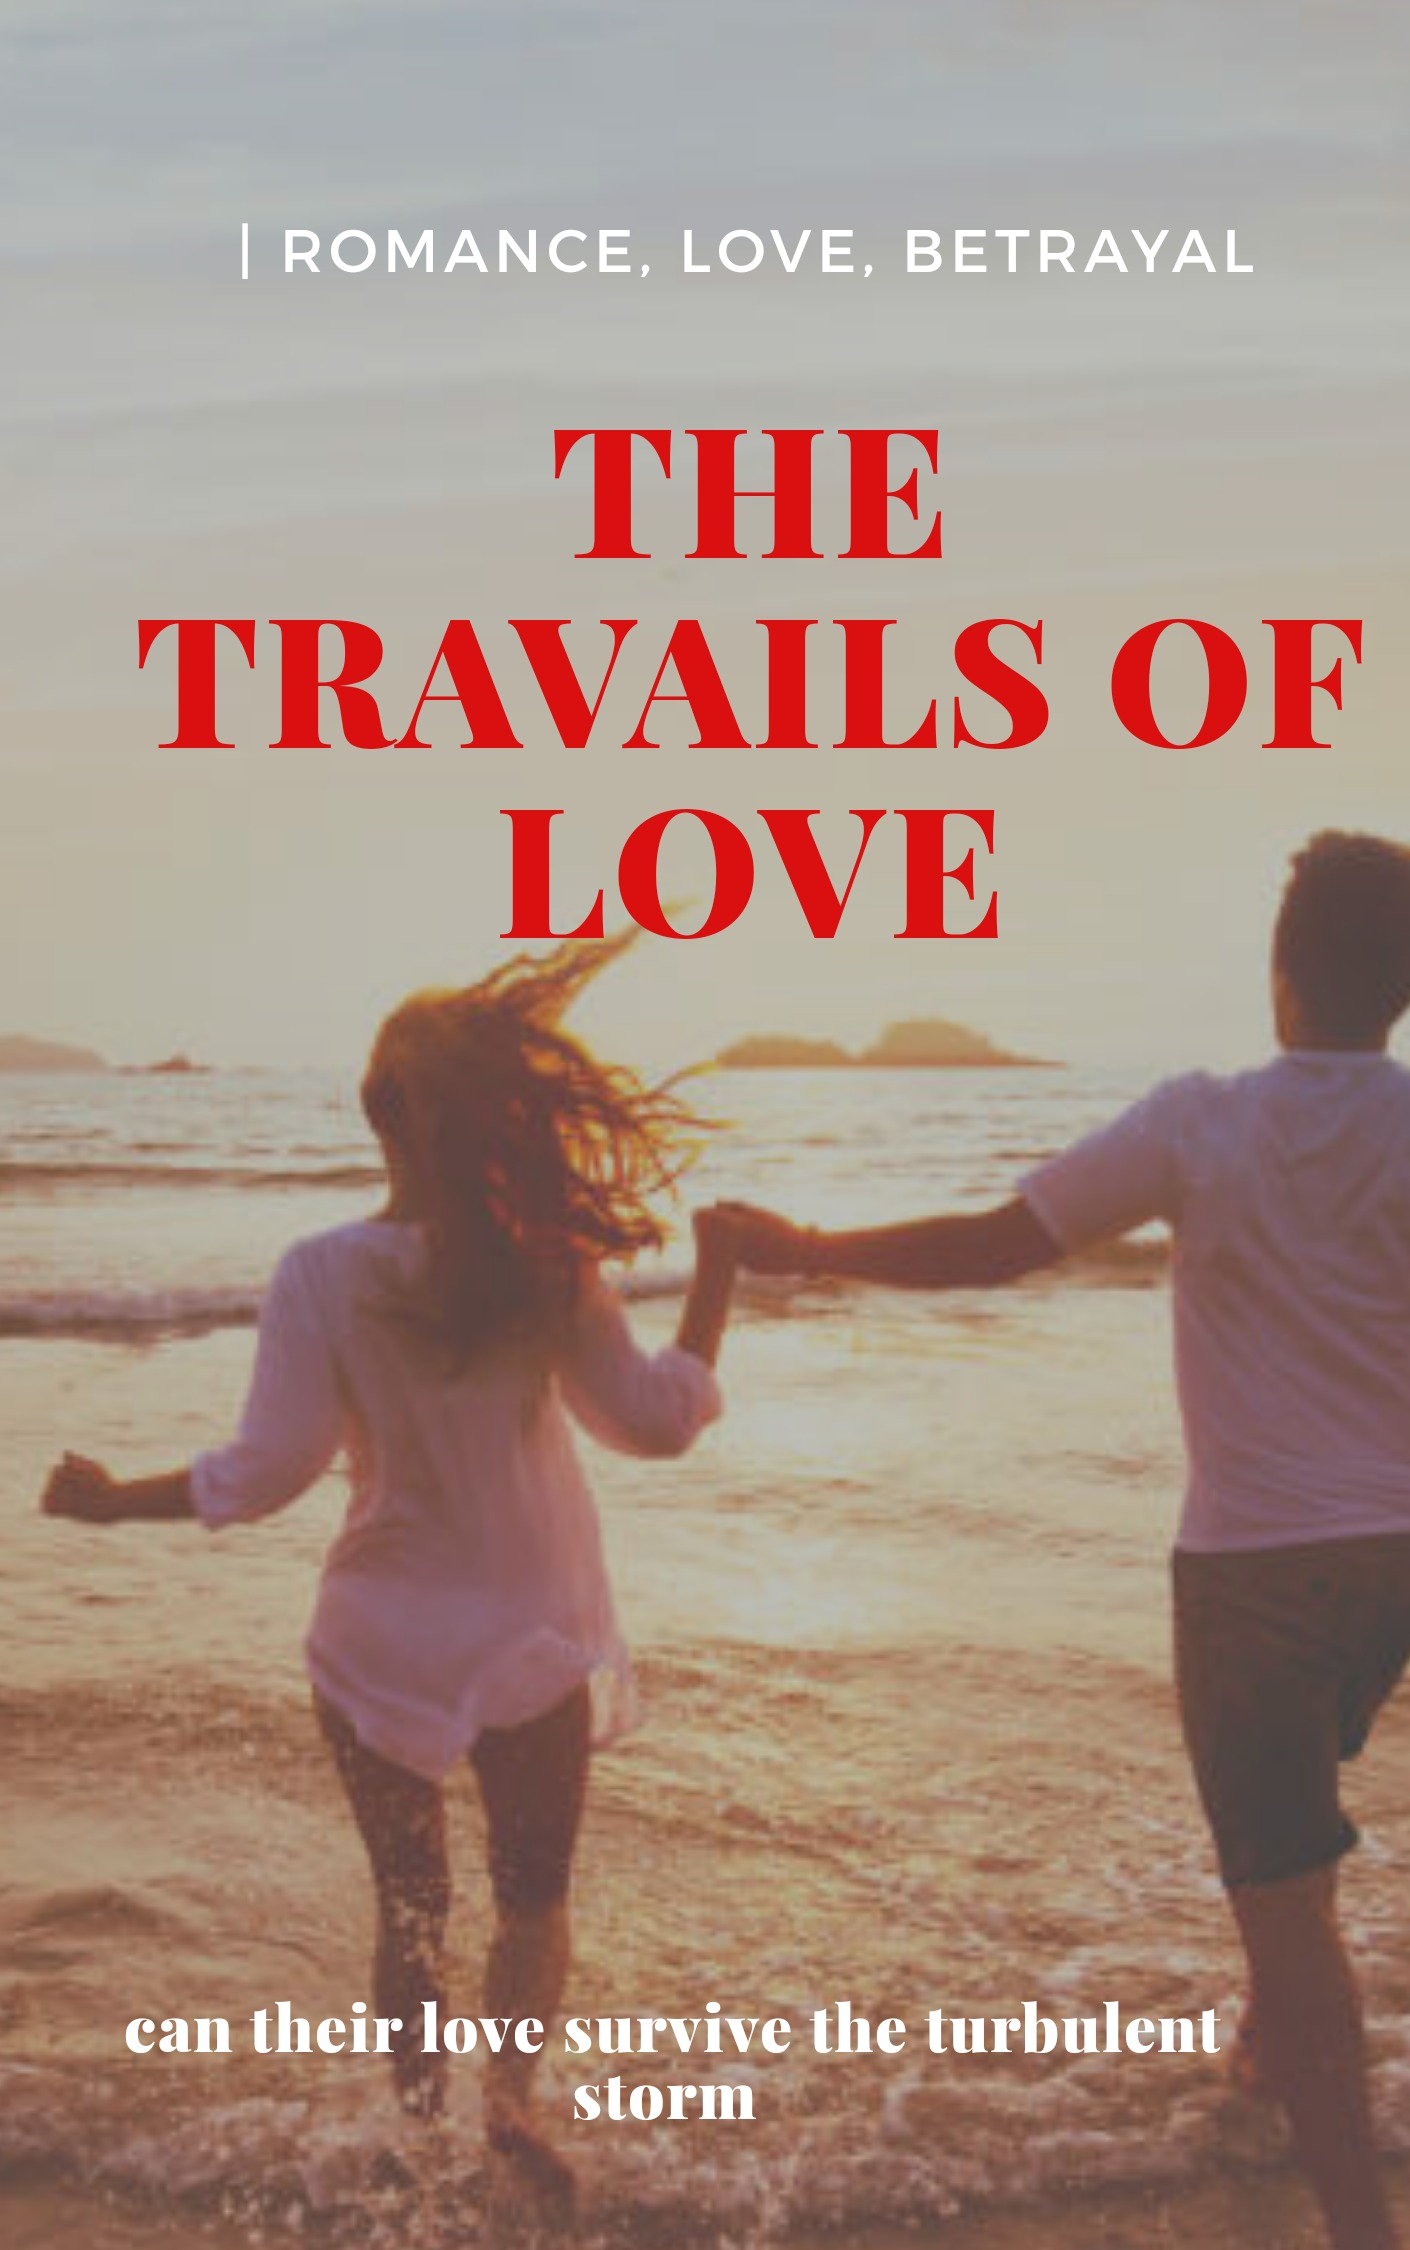 THE TRAVAILS OF LOVE